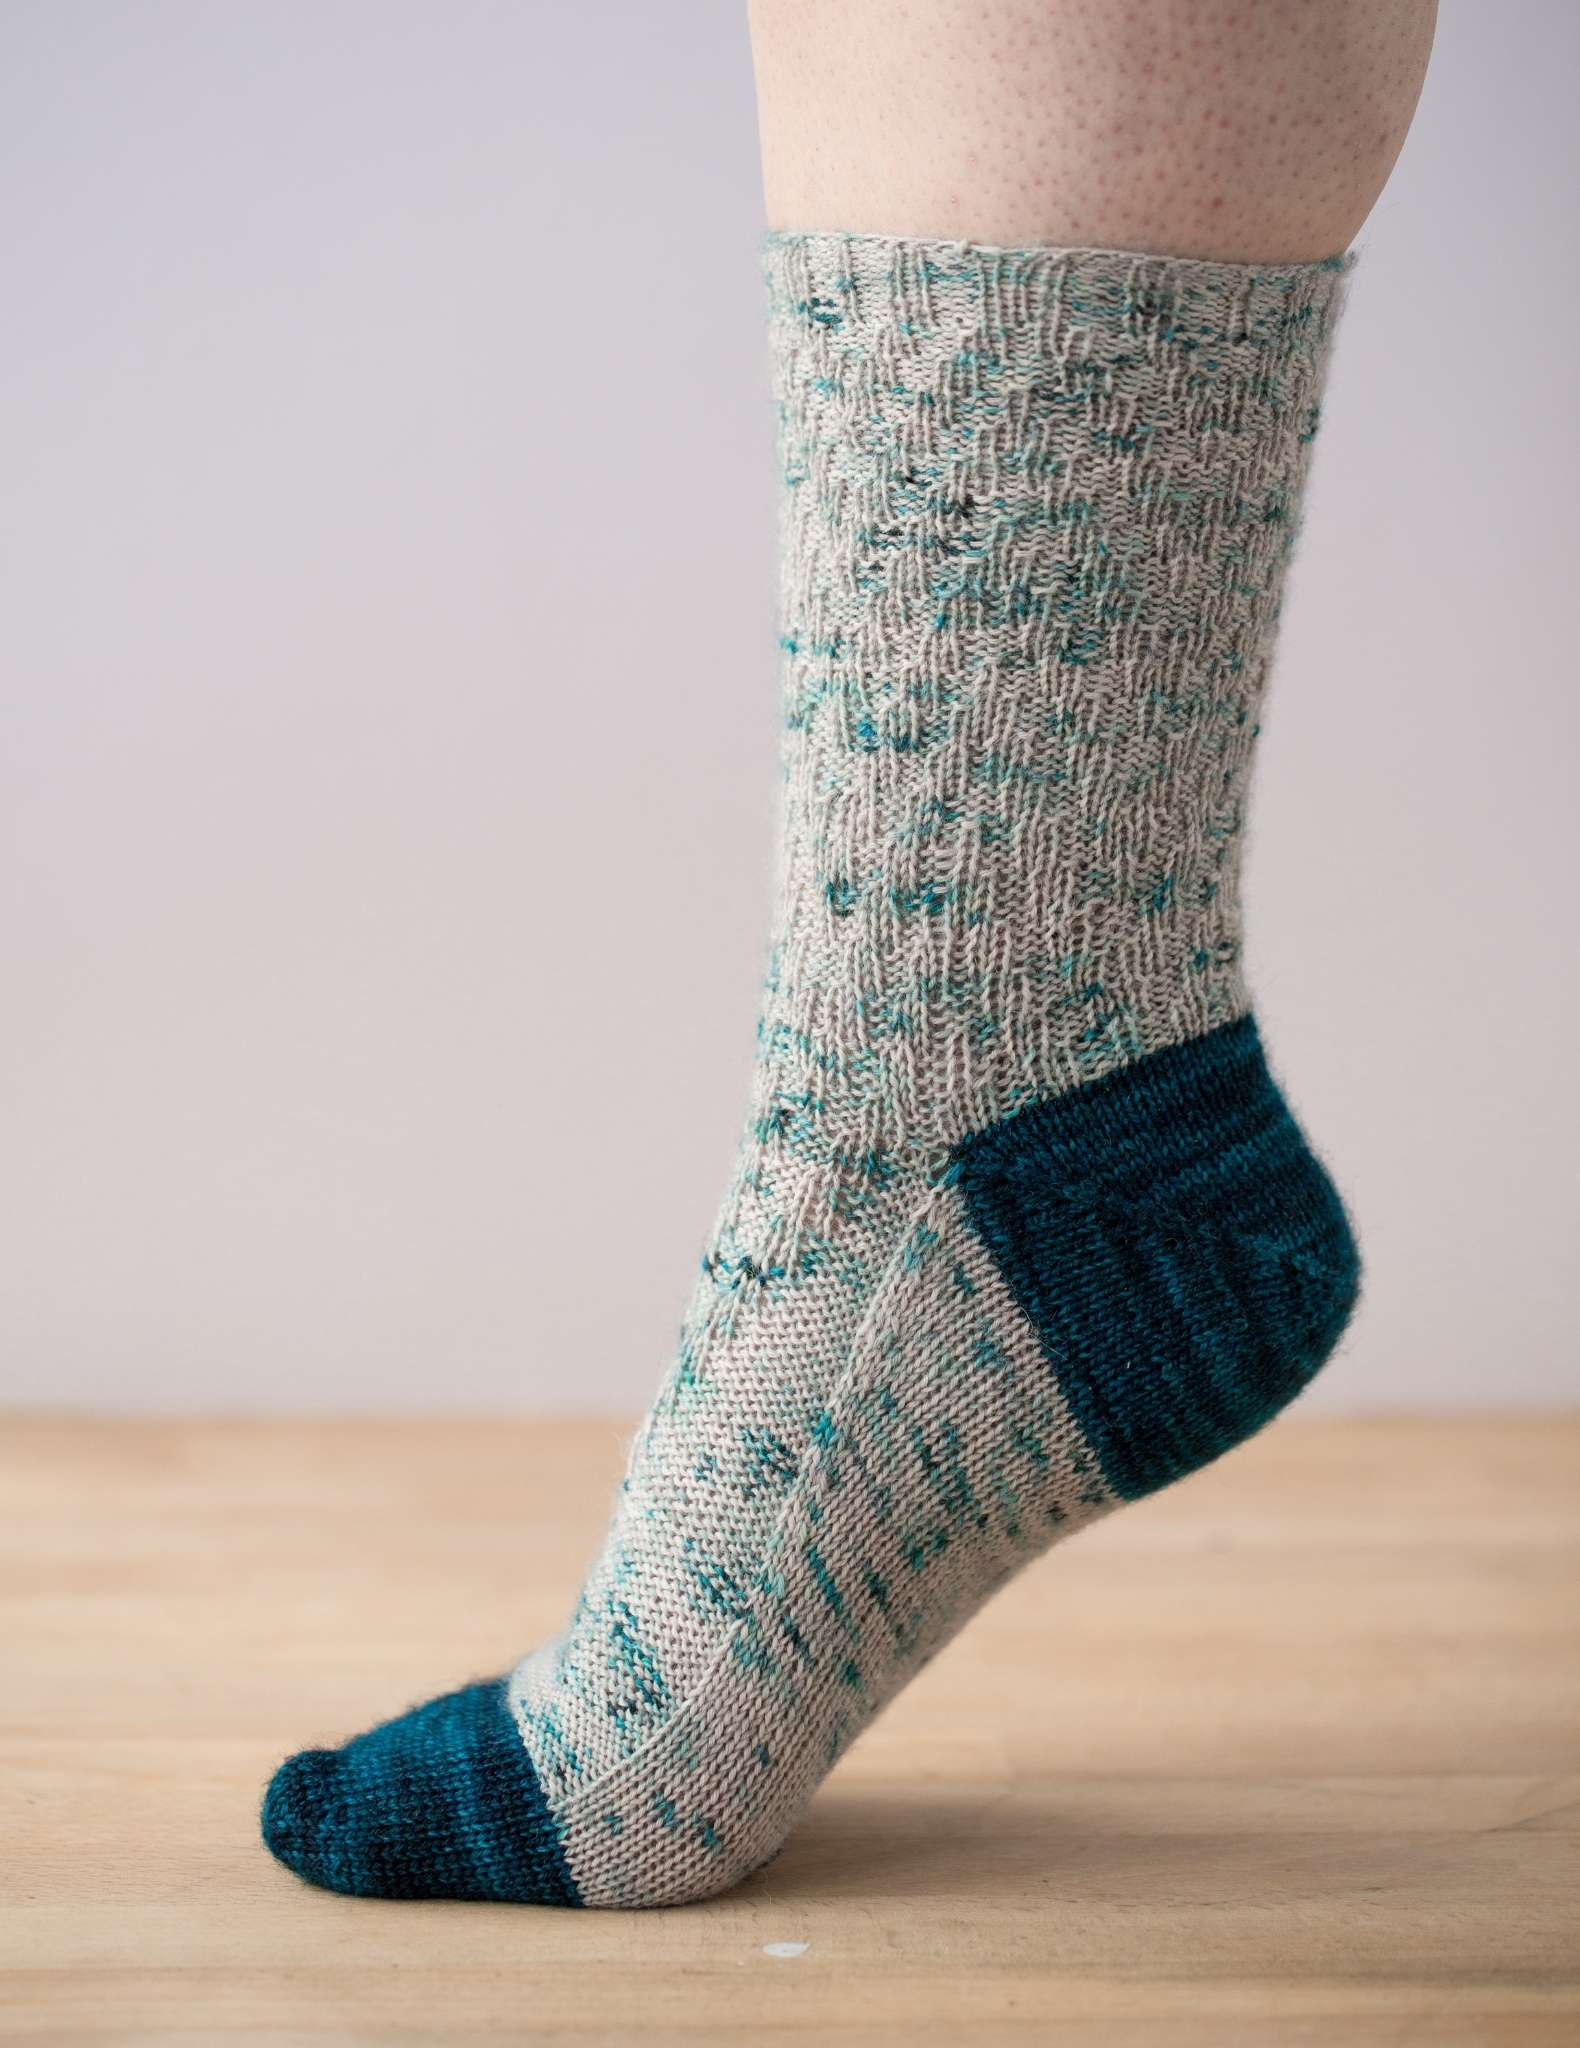 one foot is photographed from the side, with the toe on a wooden surface and the heel raised. The sock has a dark teal toe and heel and a paler textured pattern on the rest of the sock.